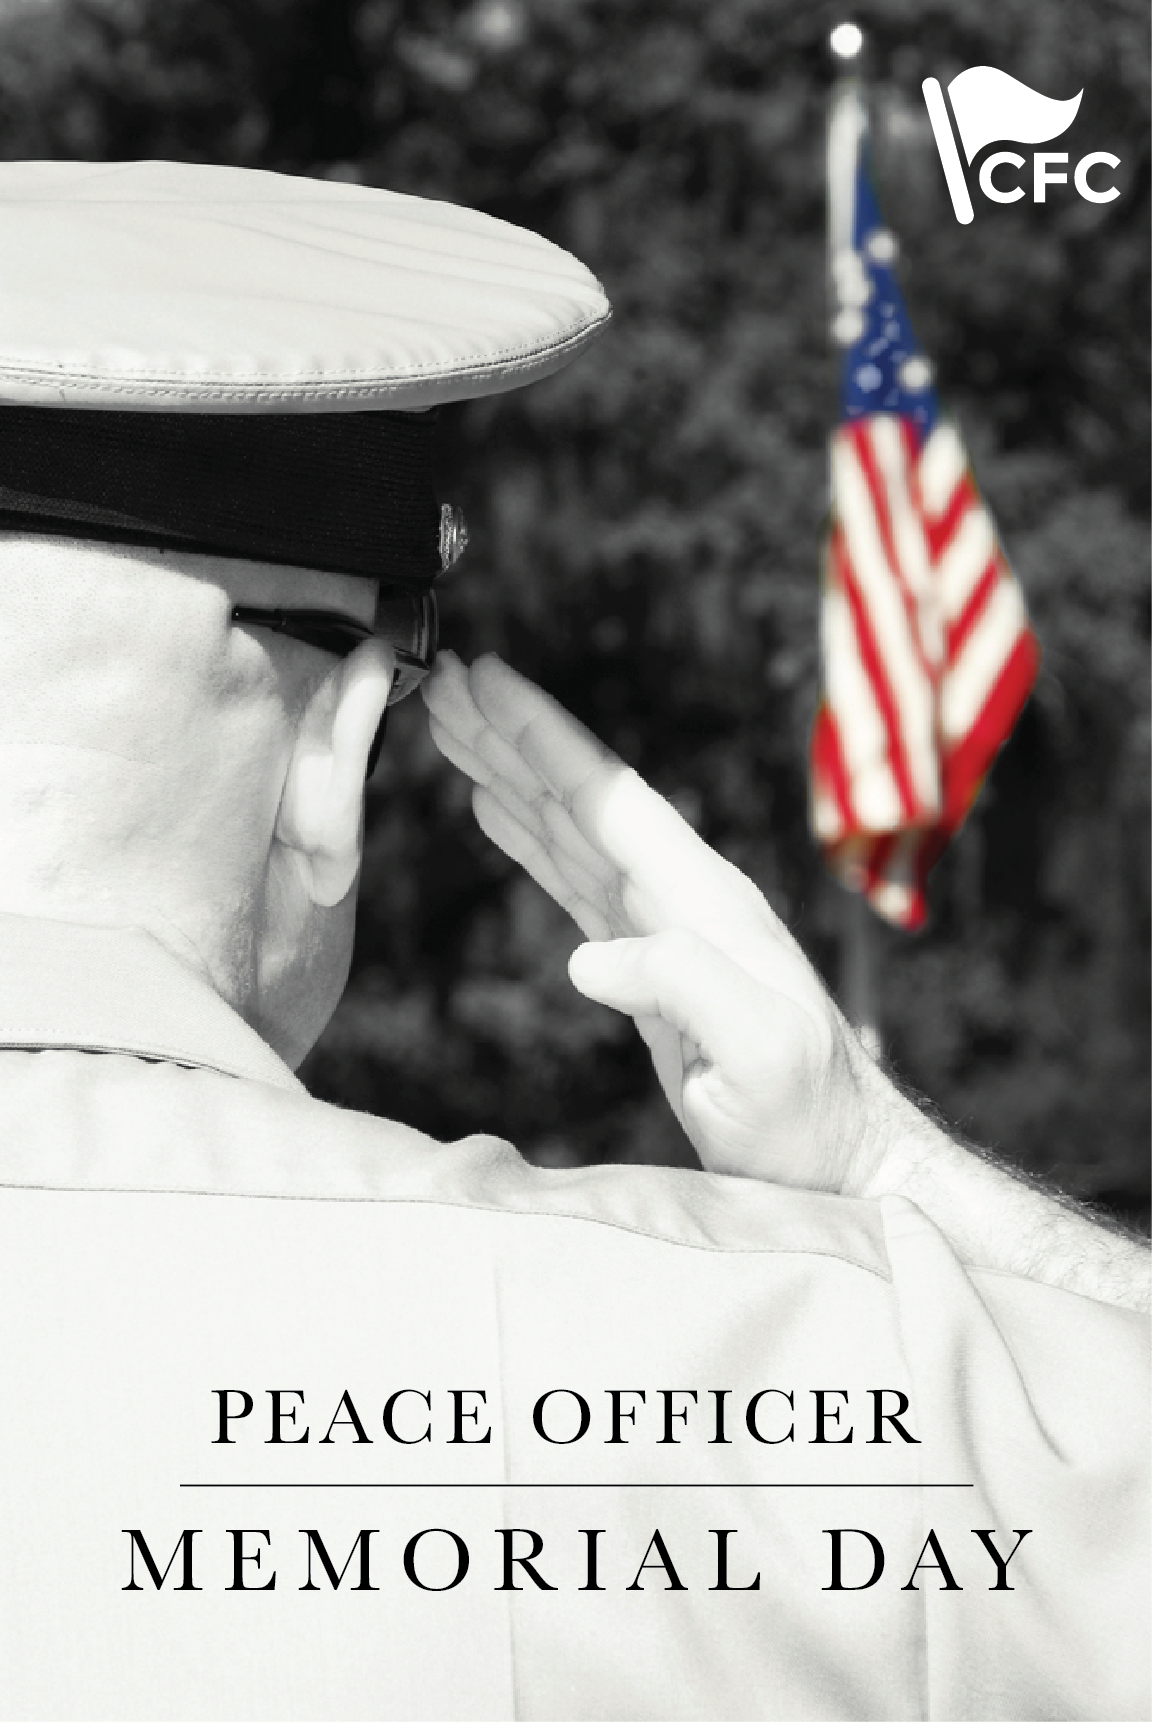 Peace Officer Memorial Day 2019 Custom Flag Company